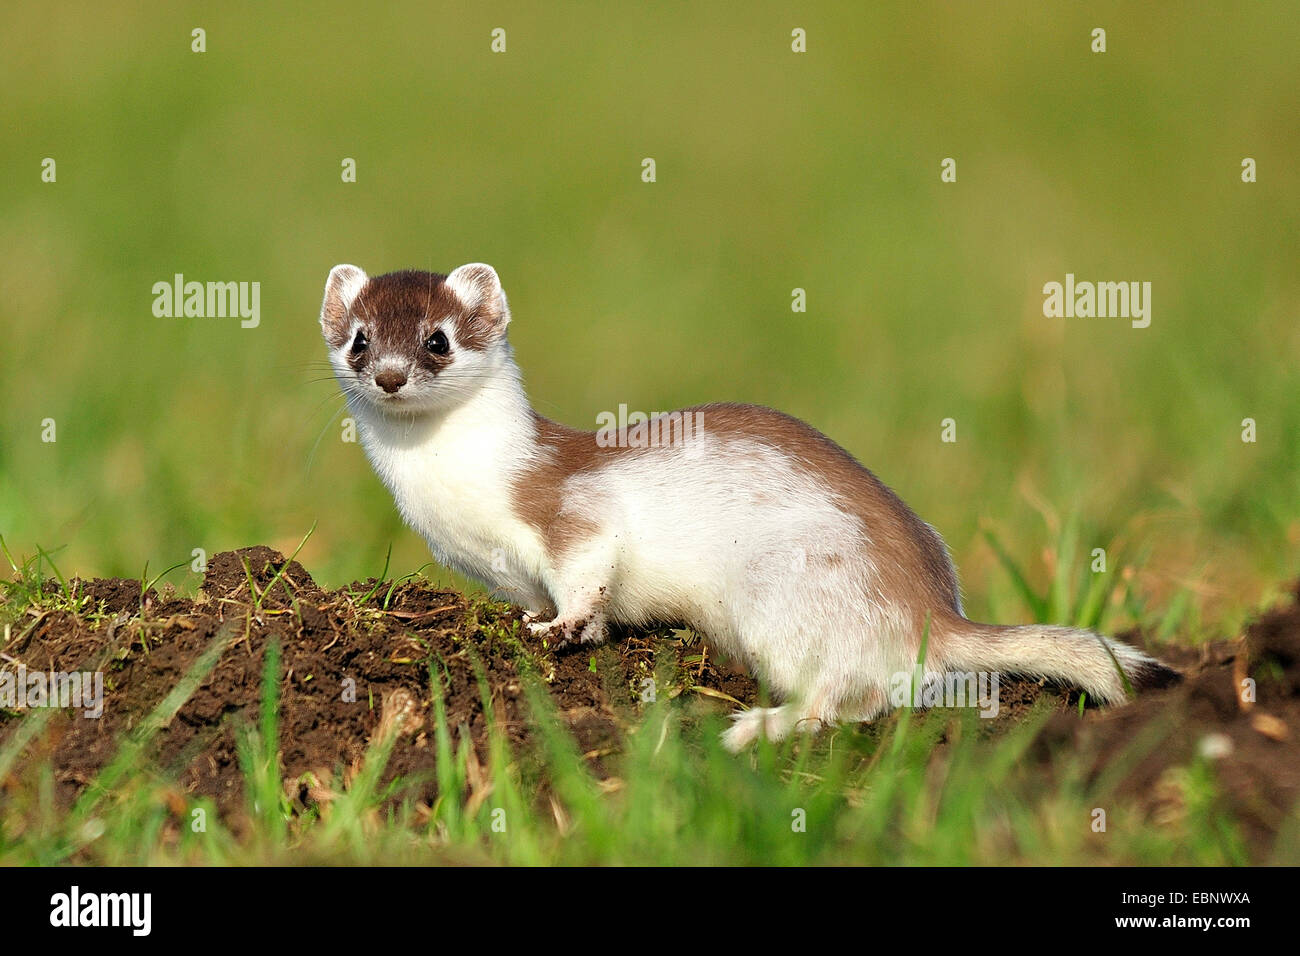 weasel deutsch